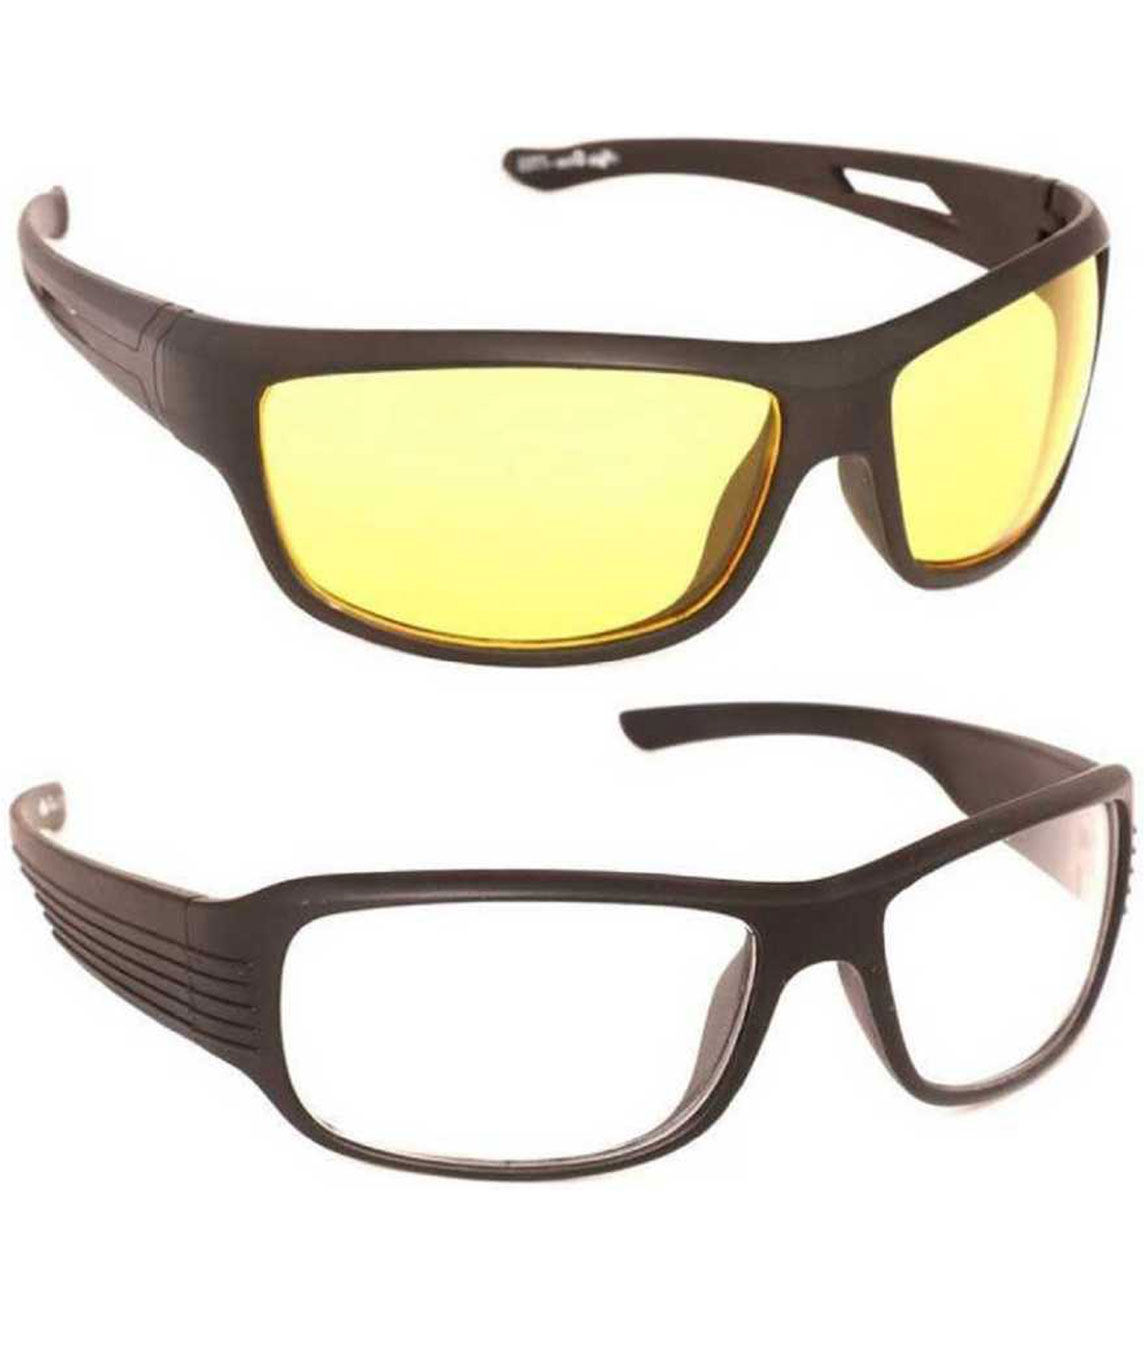 I KING NIGHT VISION WRAP-AROUND SUNGLASSES (FREE SIZE) (YELLOW, CLEAR)